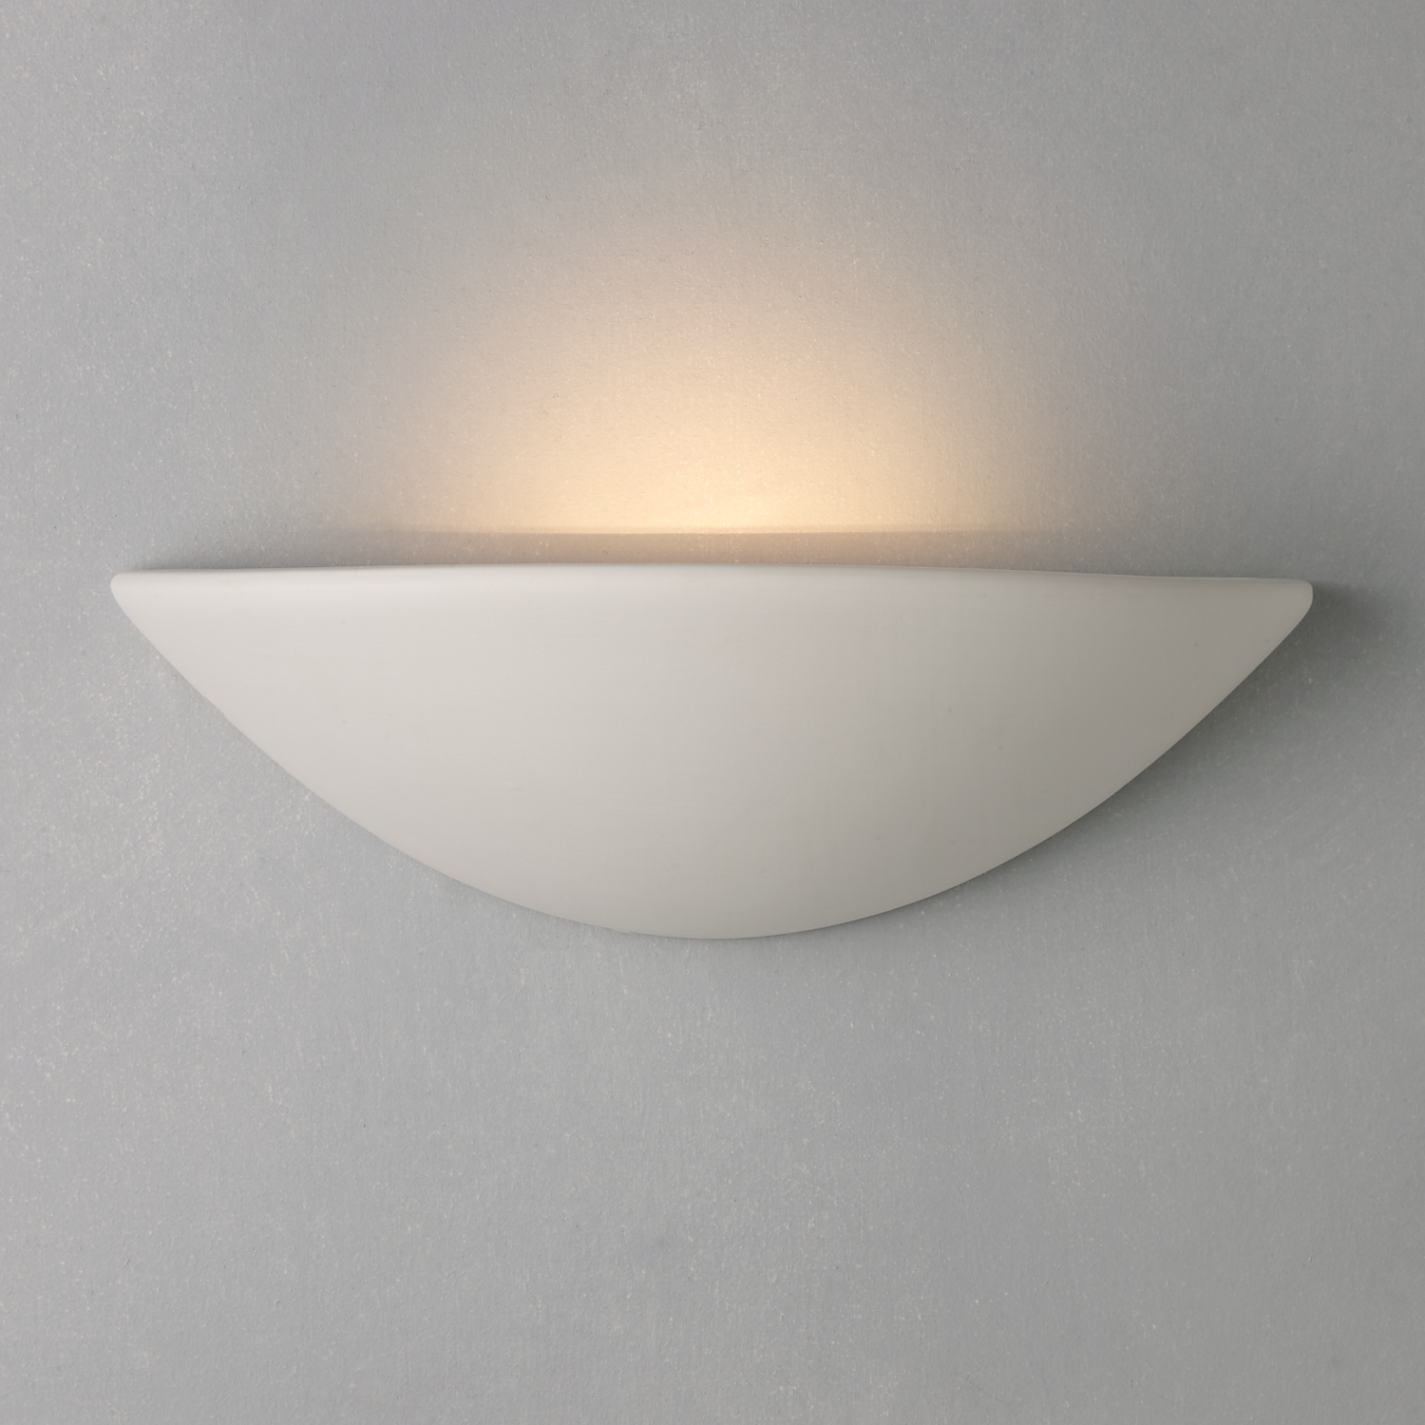 Buy john lewis radius uplighter wall light white john lewis buy john lewis radius uplighter wall light white online at johnlewis mozeypictures Images